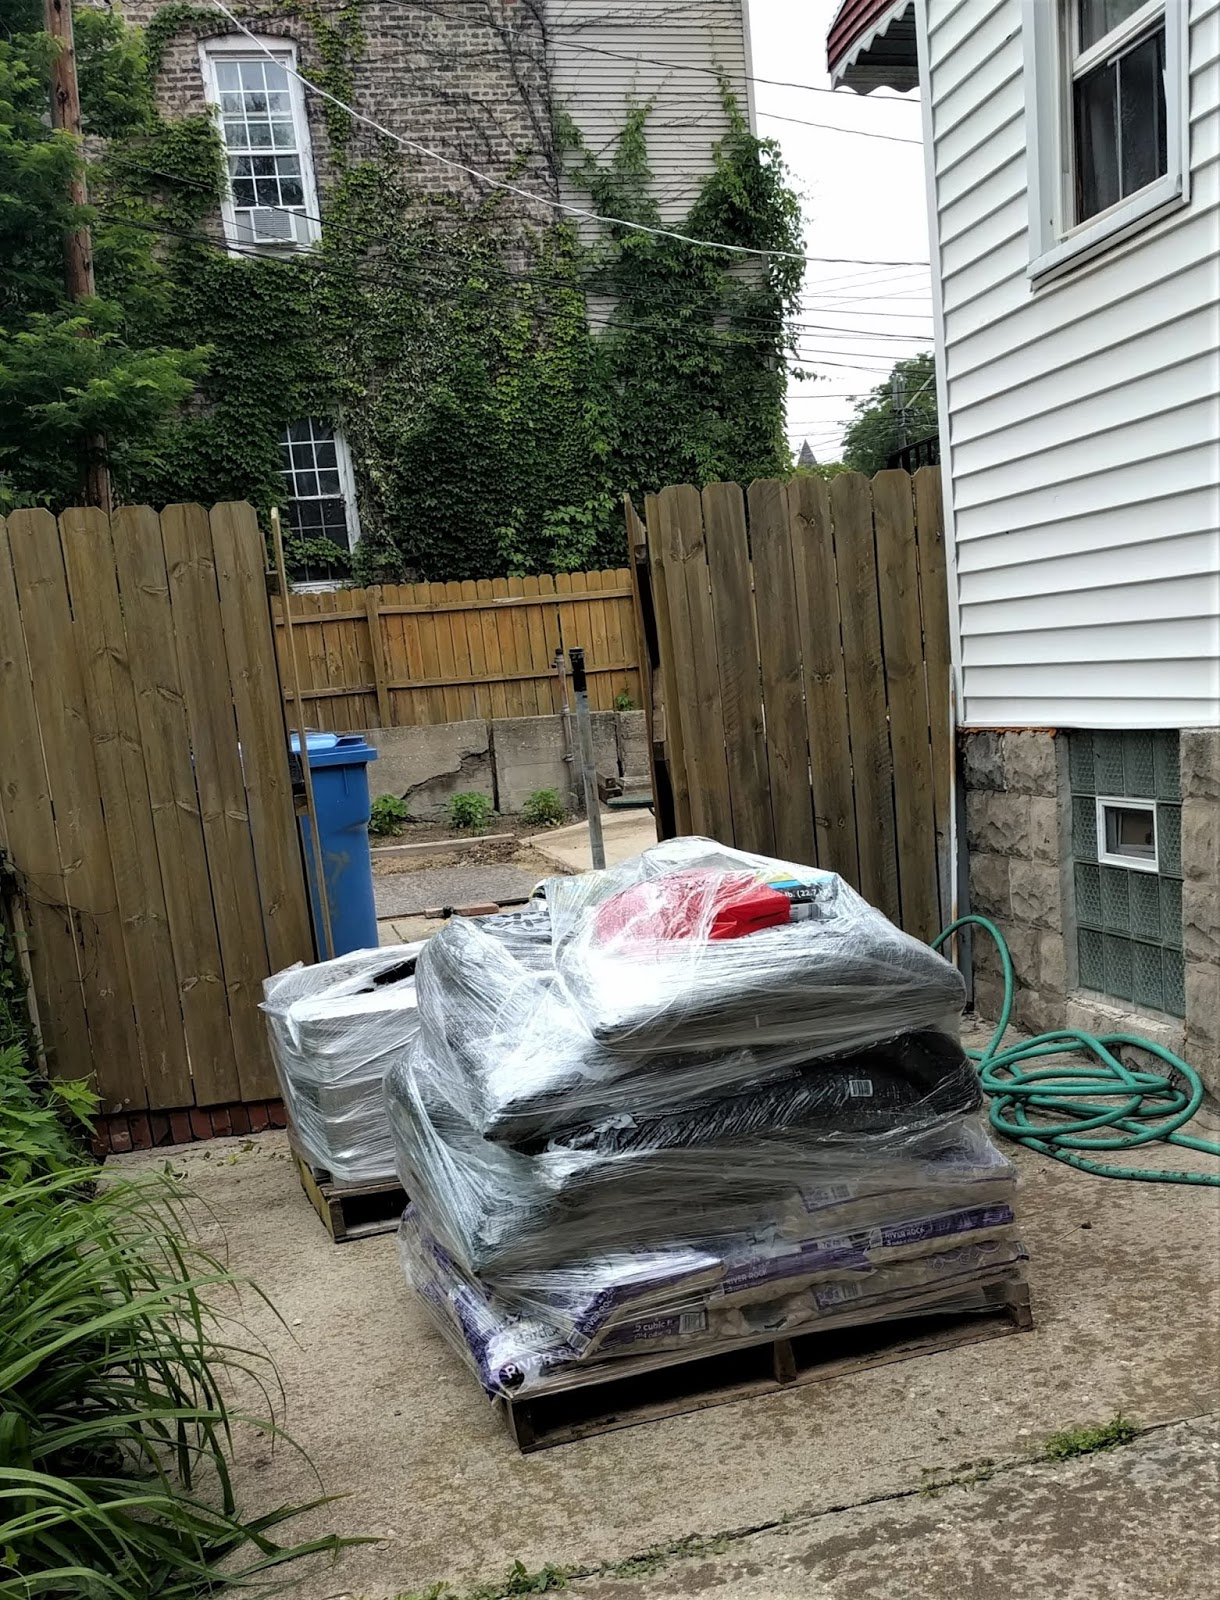 Last Week We Got A Big Delivery With Patio Pavers,